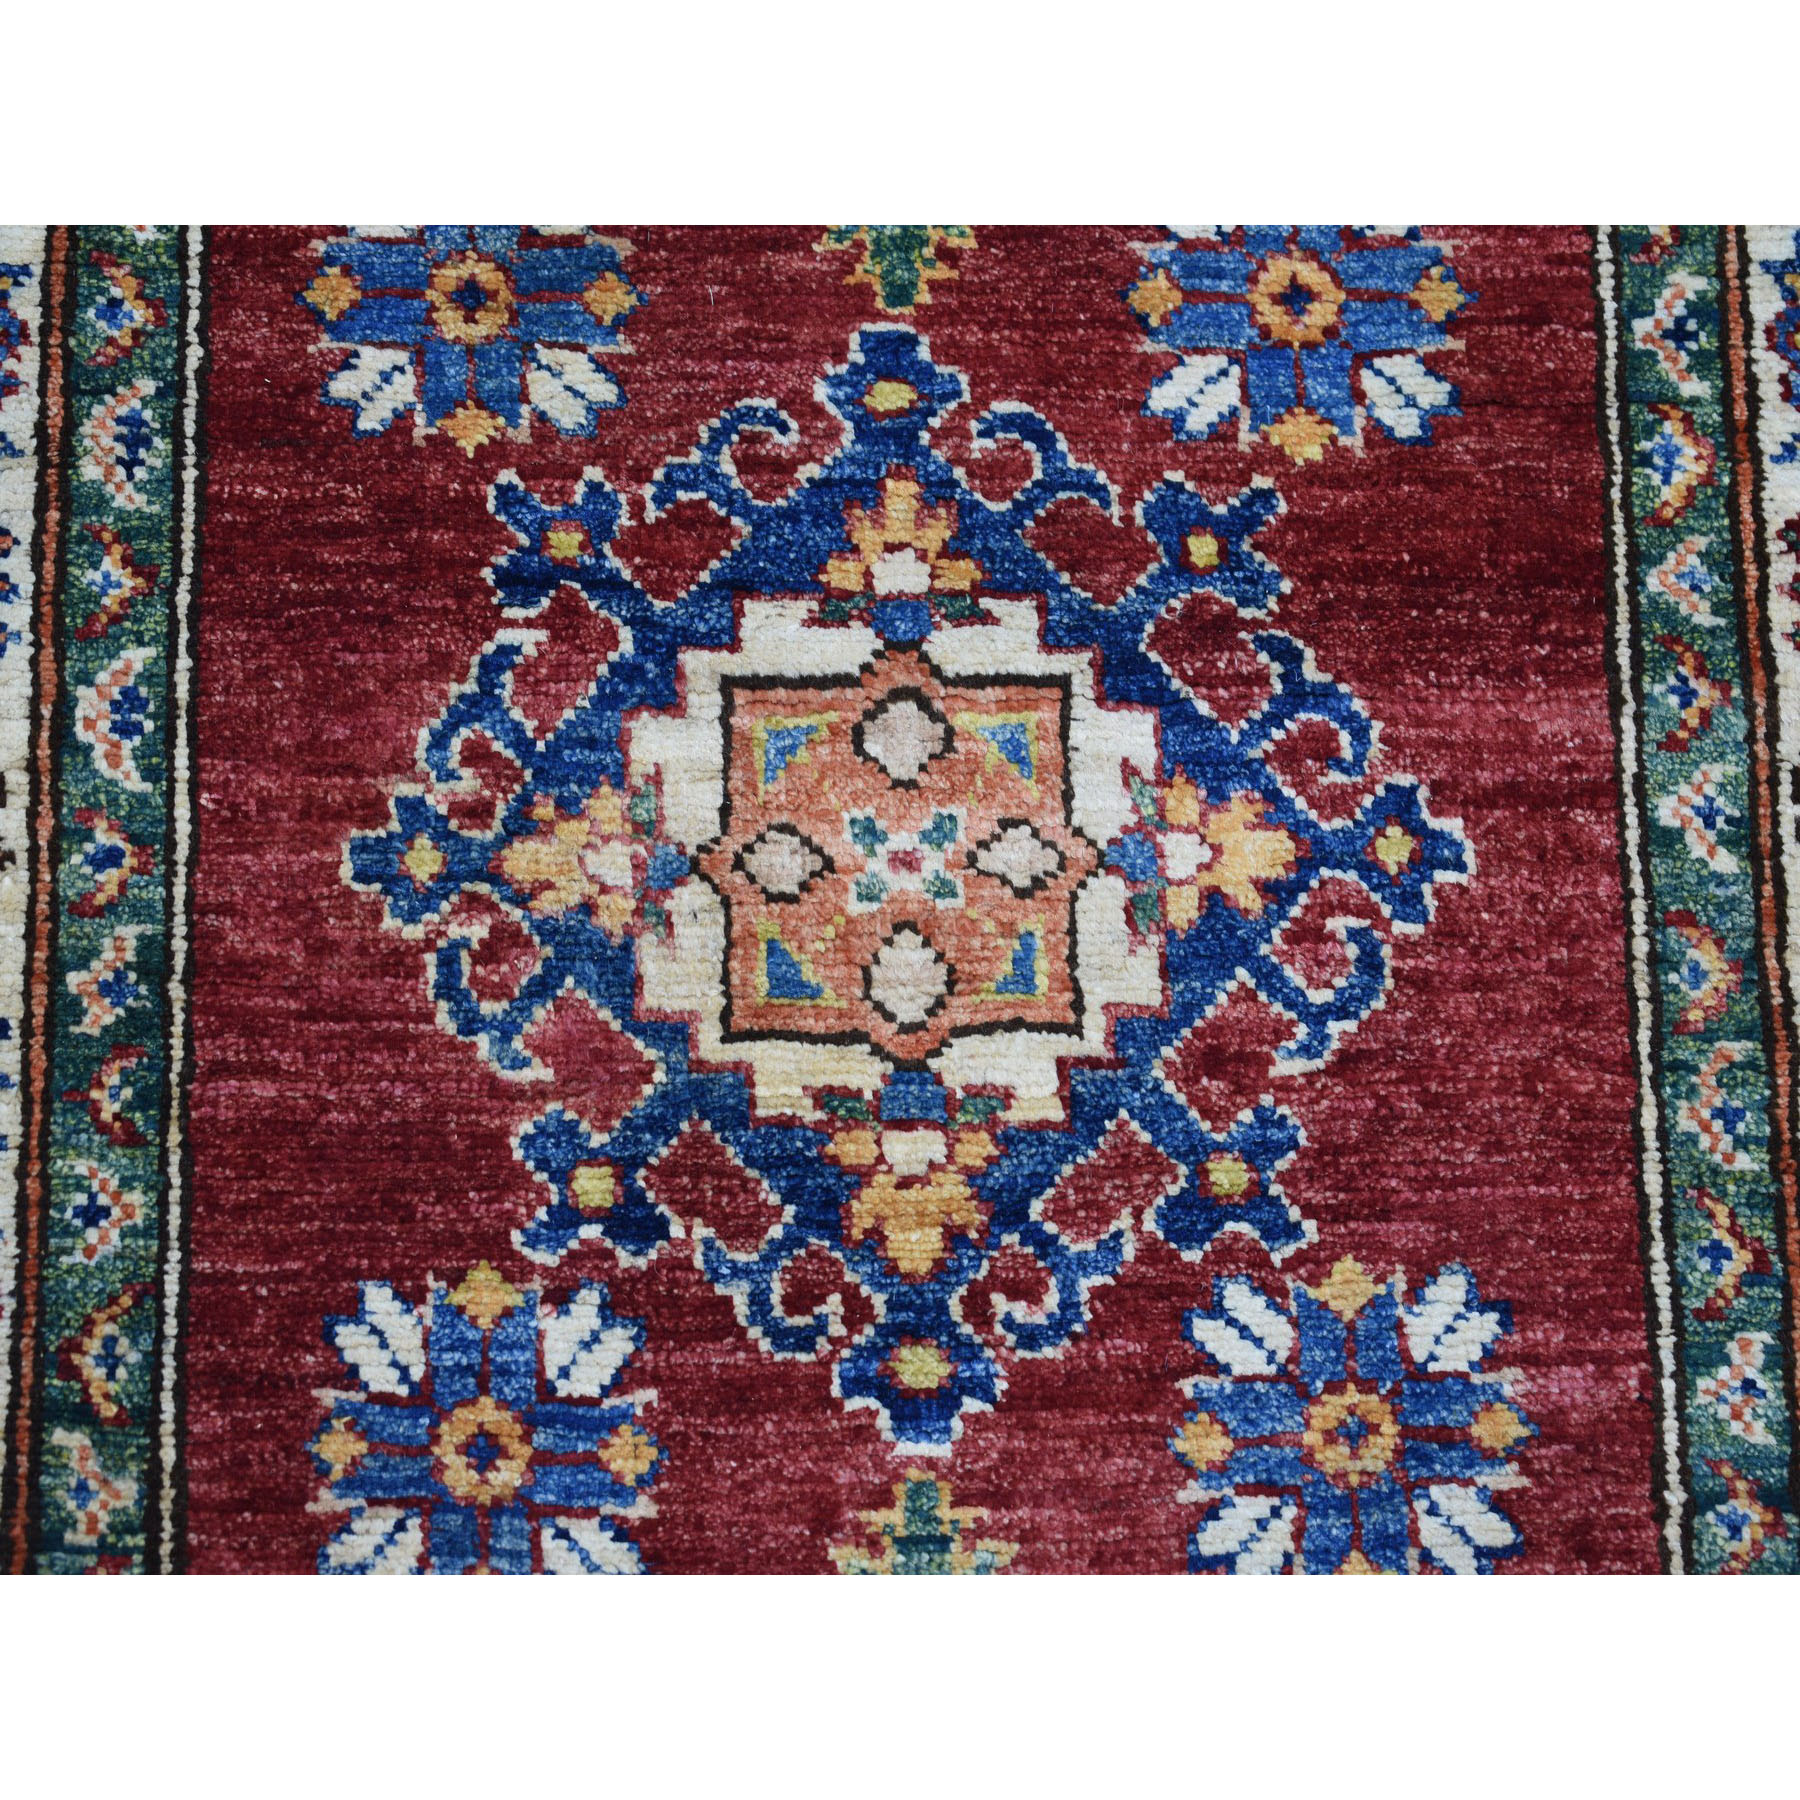 2-8 x20-3  Red Super Kazak Pure Wool Geometric Design XL Runner Hand-Knotted Oriental Rug